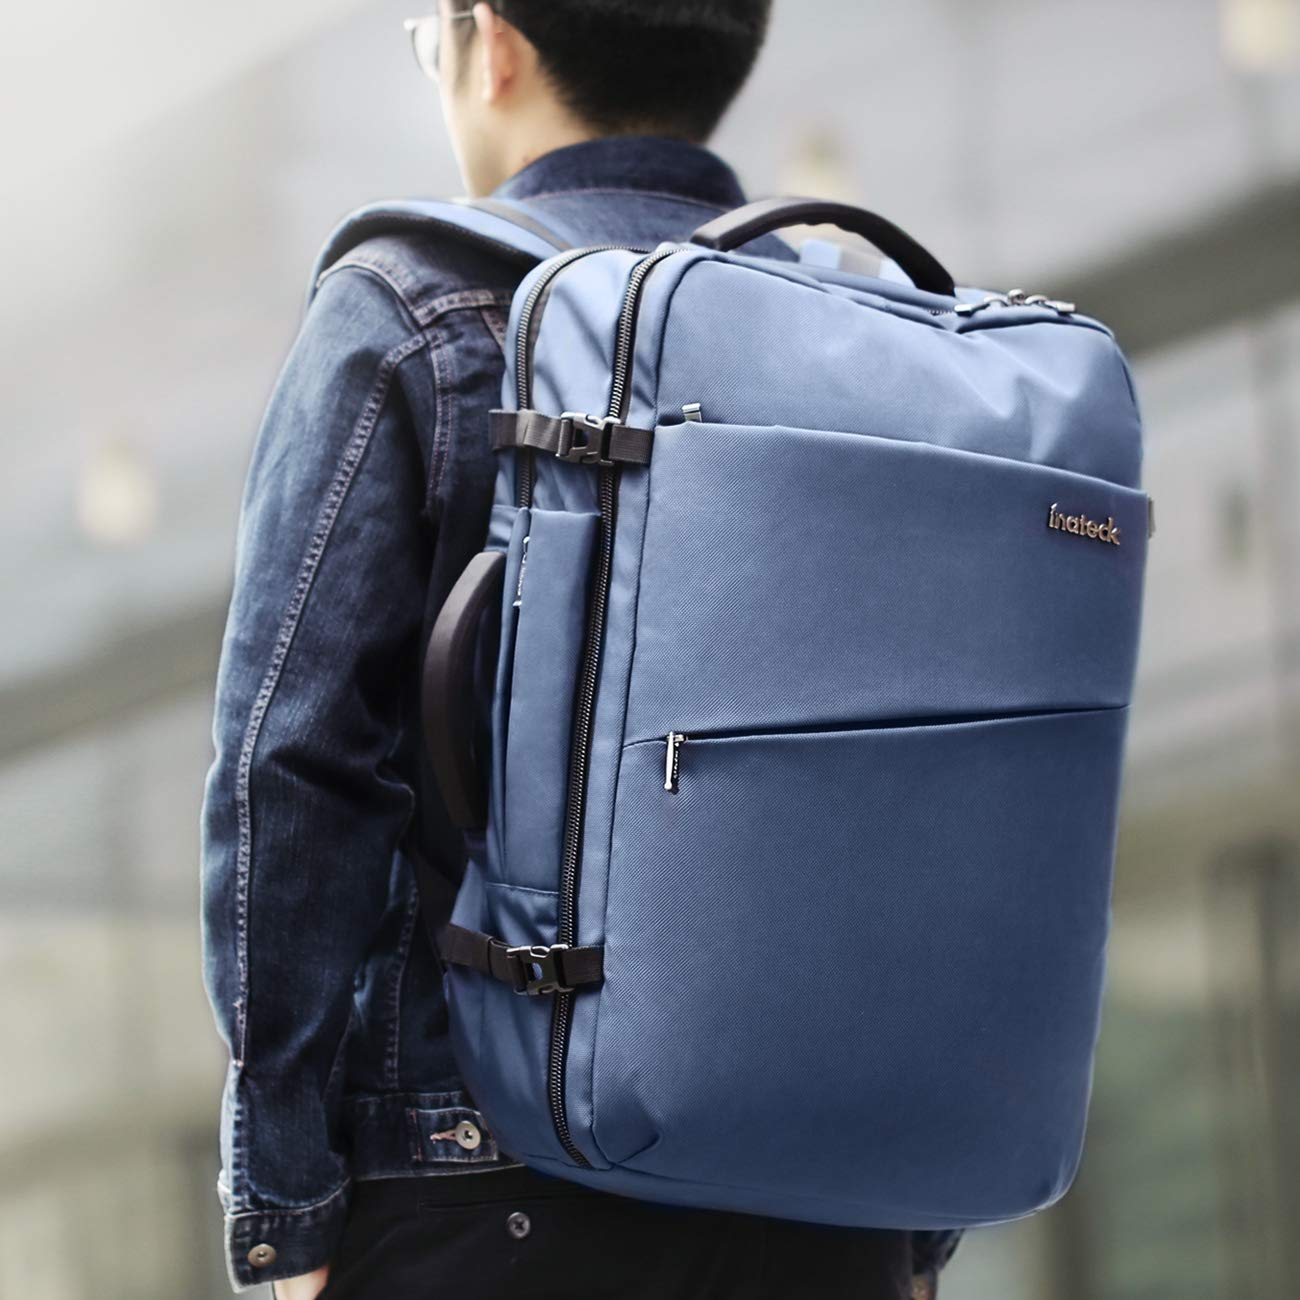 Inateck Travel Carry on travel bag